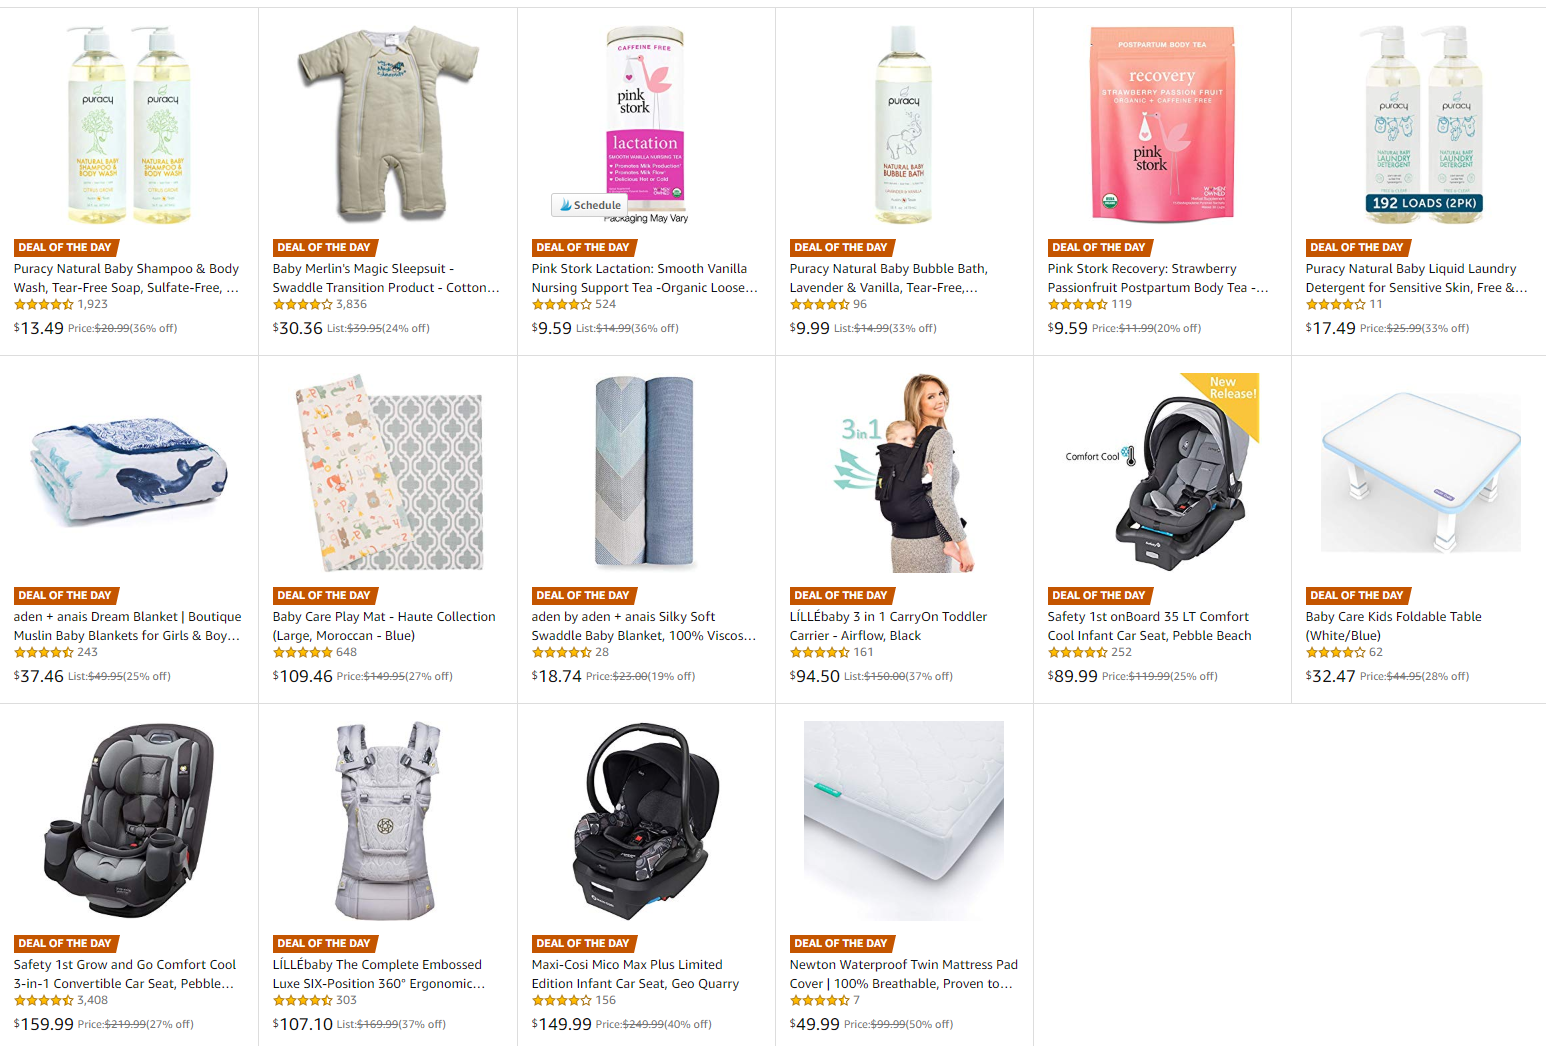 mom incontinence products and services